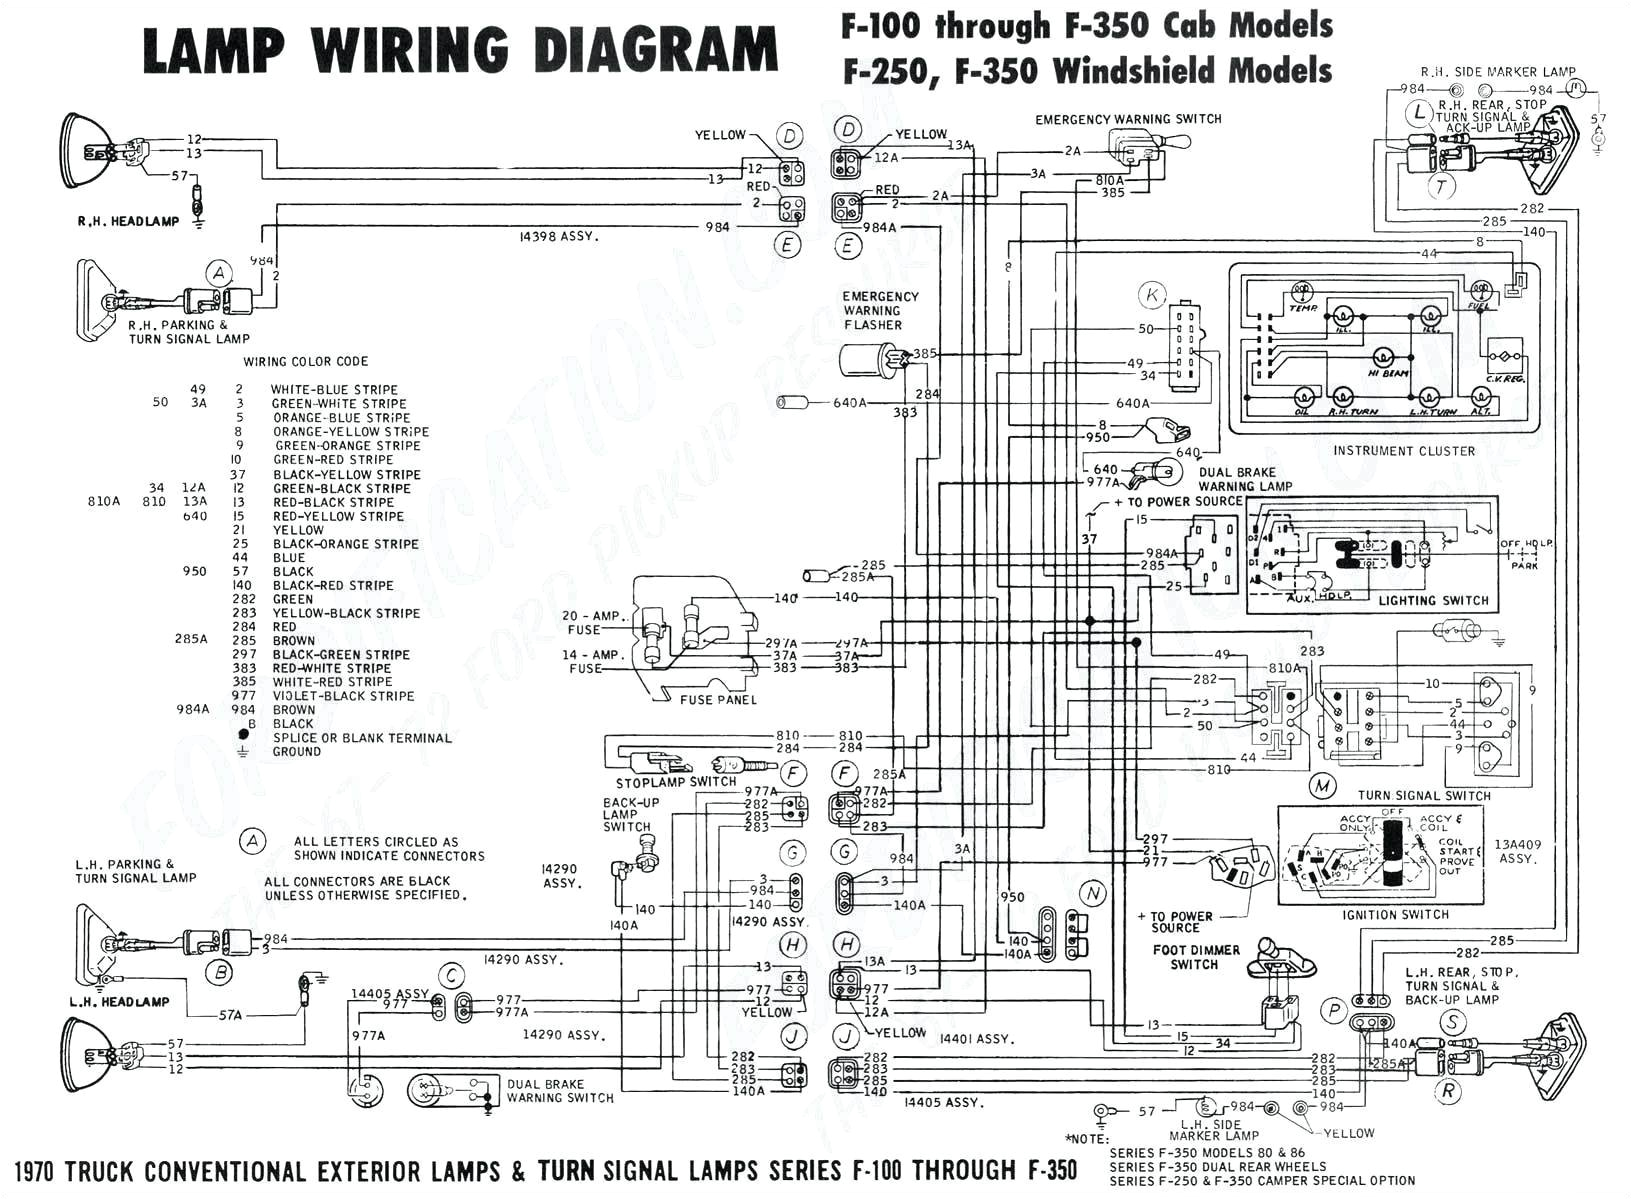 Kenworth Ignition Switch Wiring Diagram 1989 Kenworth Wiring Diagram T600 Blog Wiring Diagram